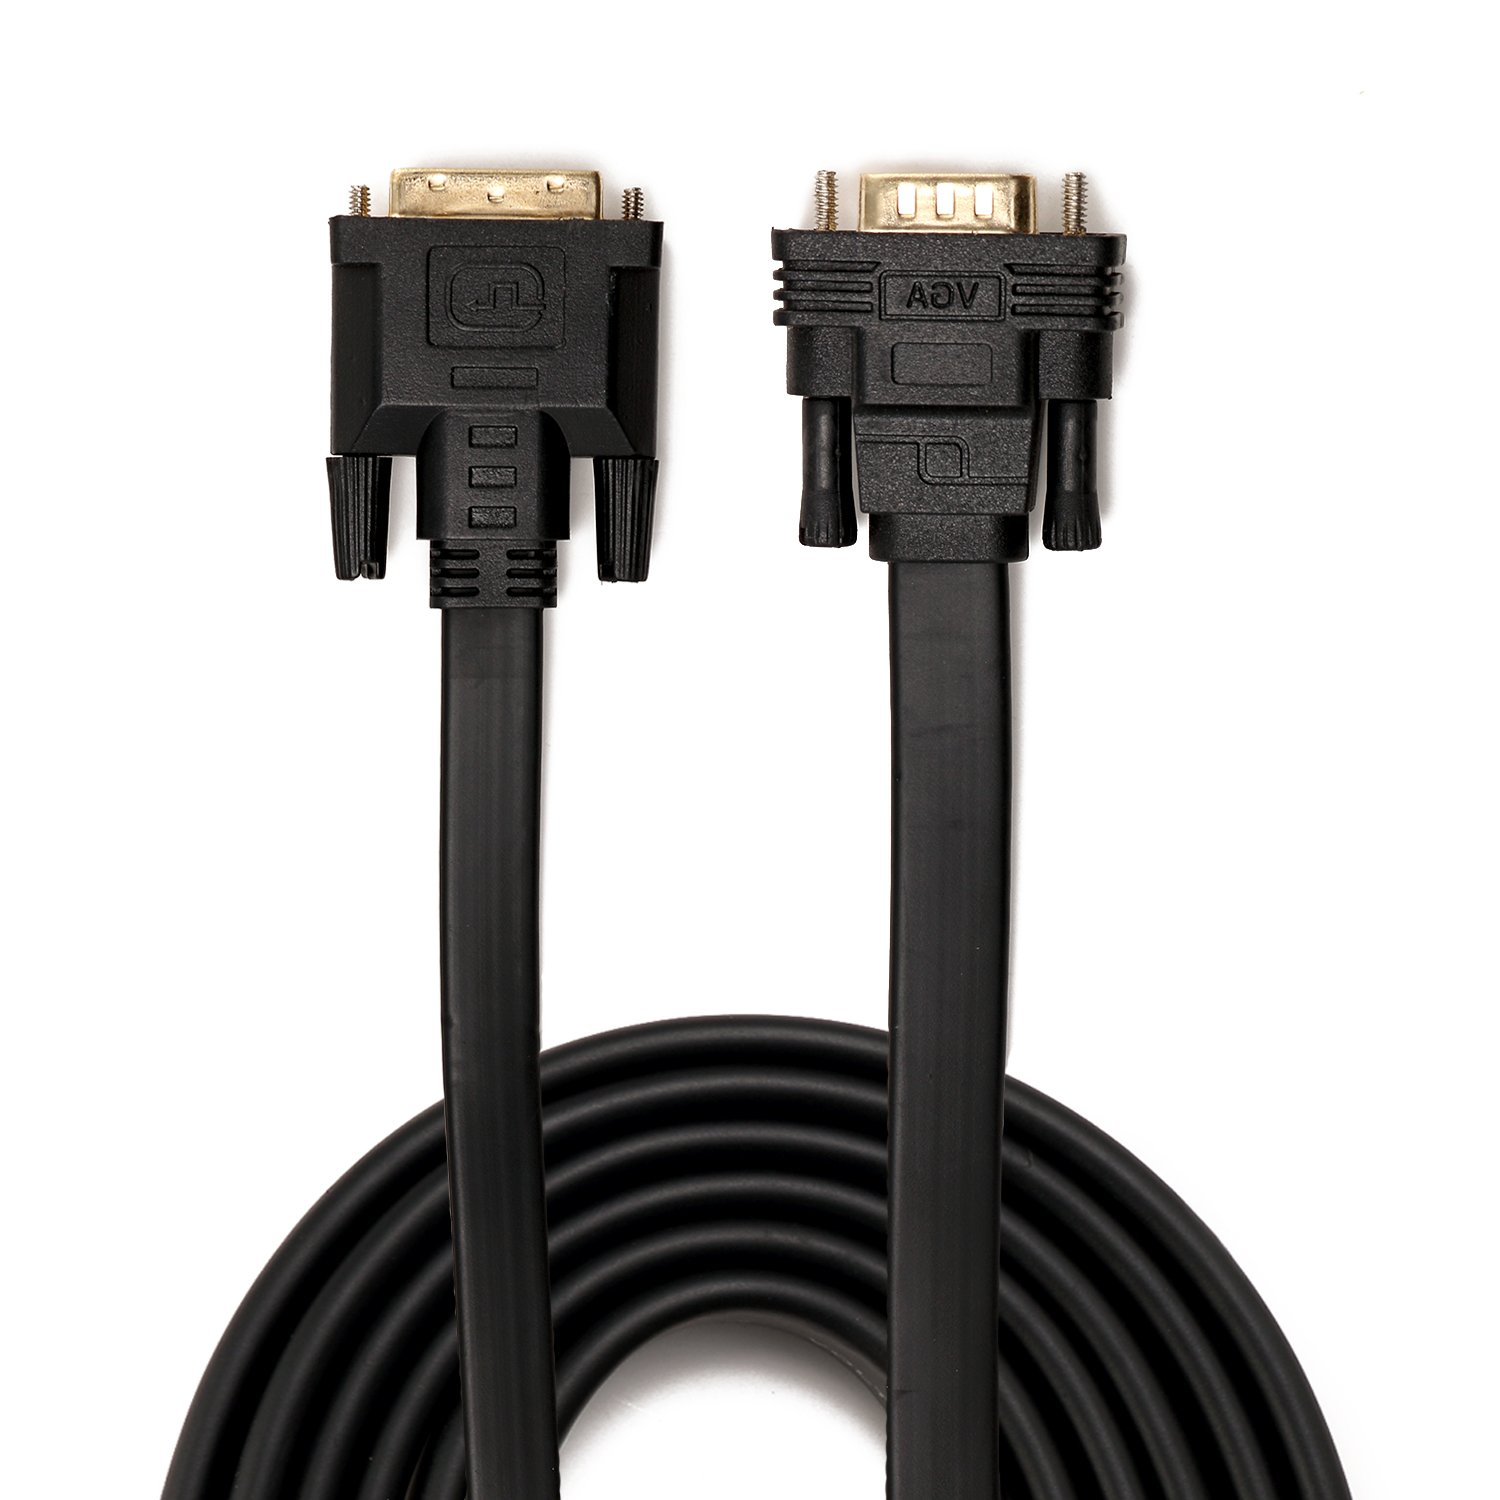 DVI to VGA, YIWENTEC DVI 24+1 DVI-D M to VGA Male With Chip Active Adapter Converter Cable for PC DVD Monitor HDTV 2M (Flat) by YIWENTEC (Image #3)